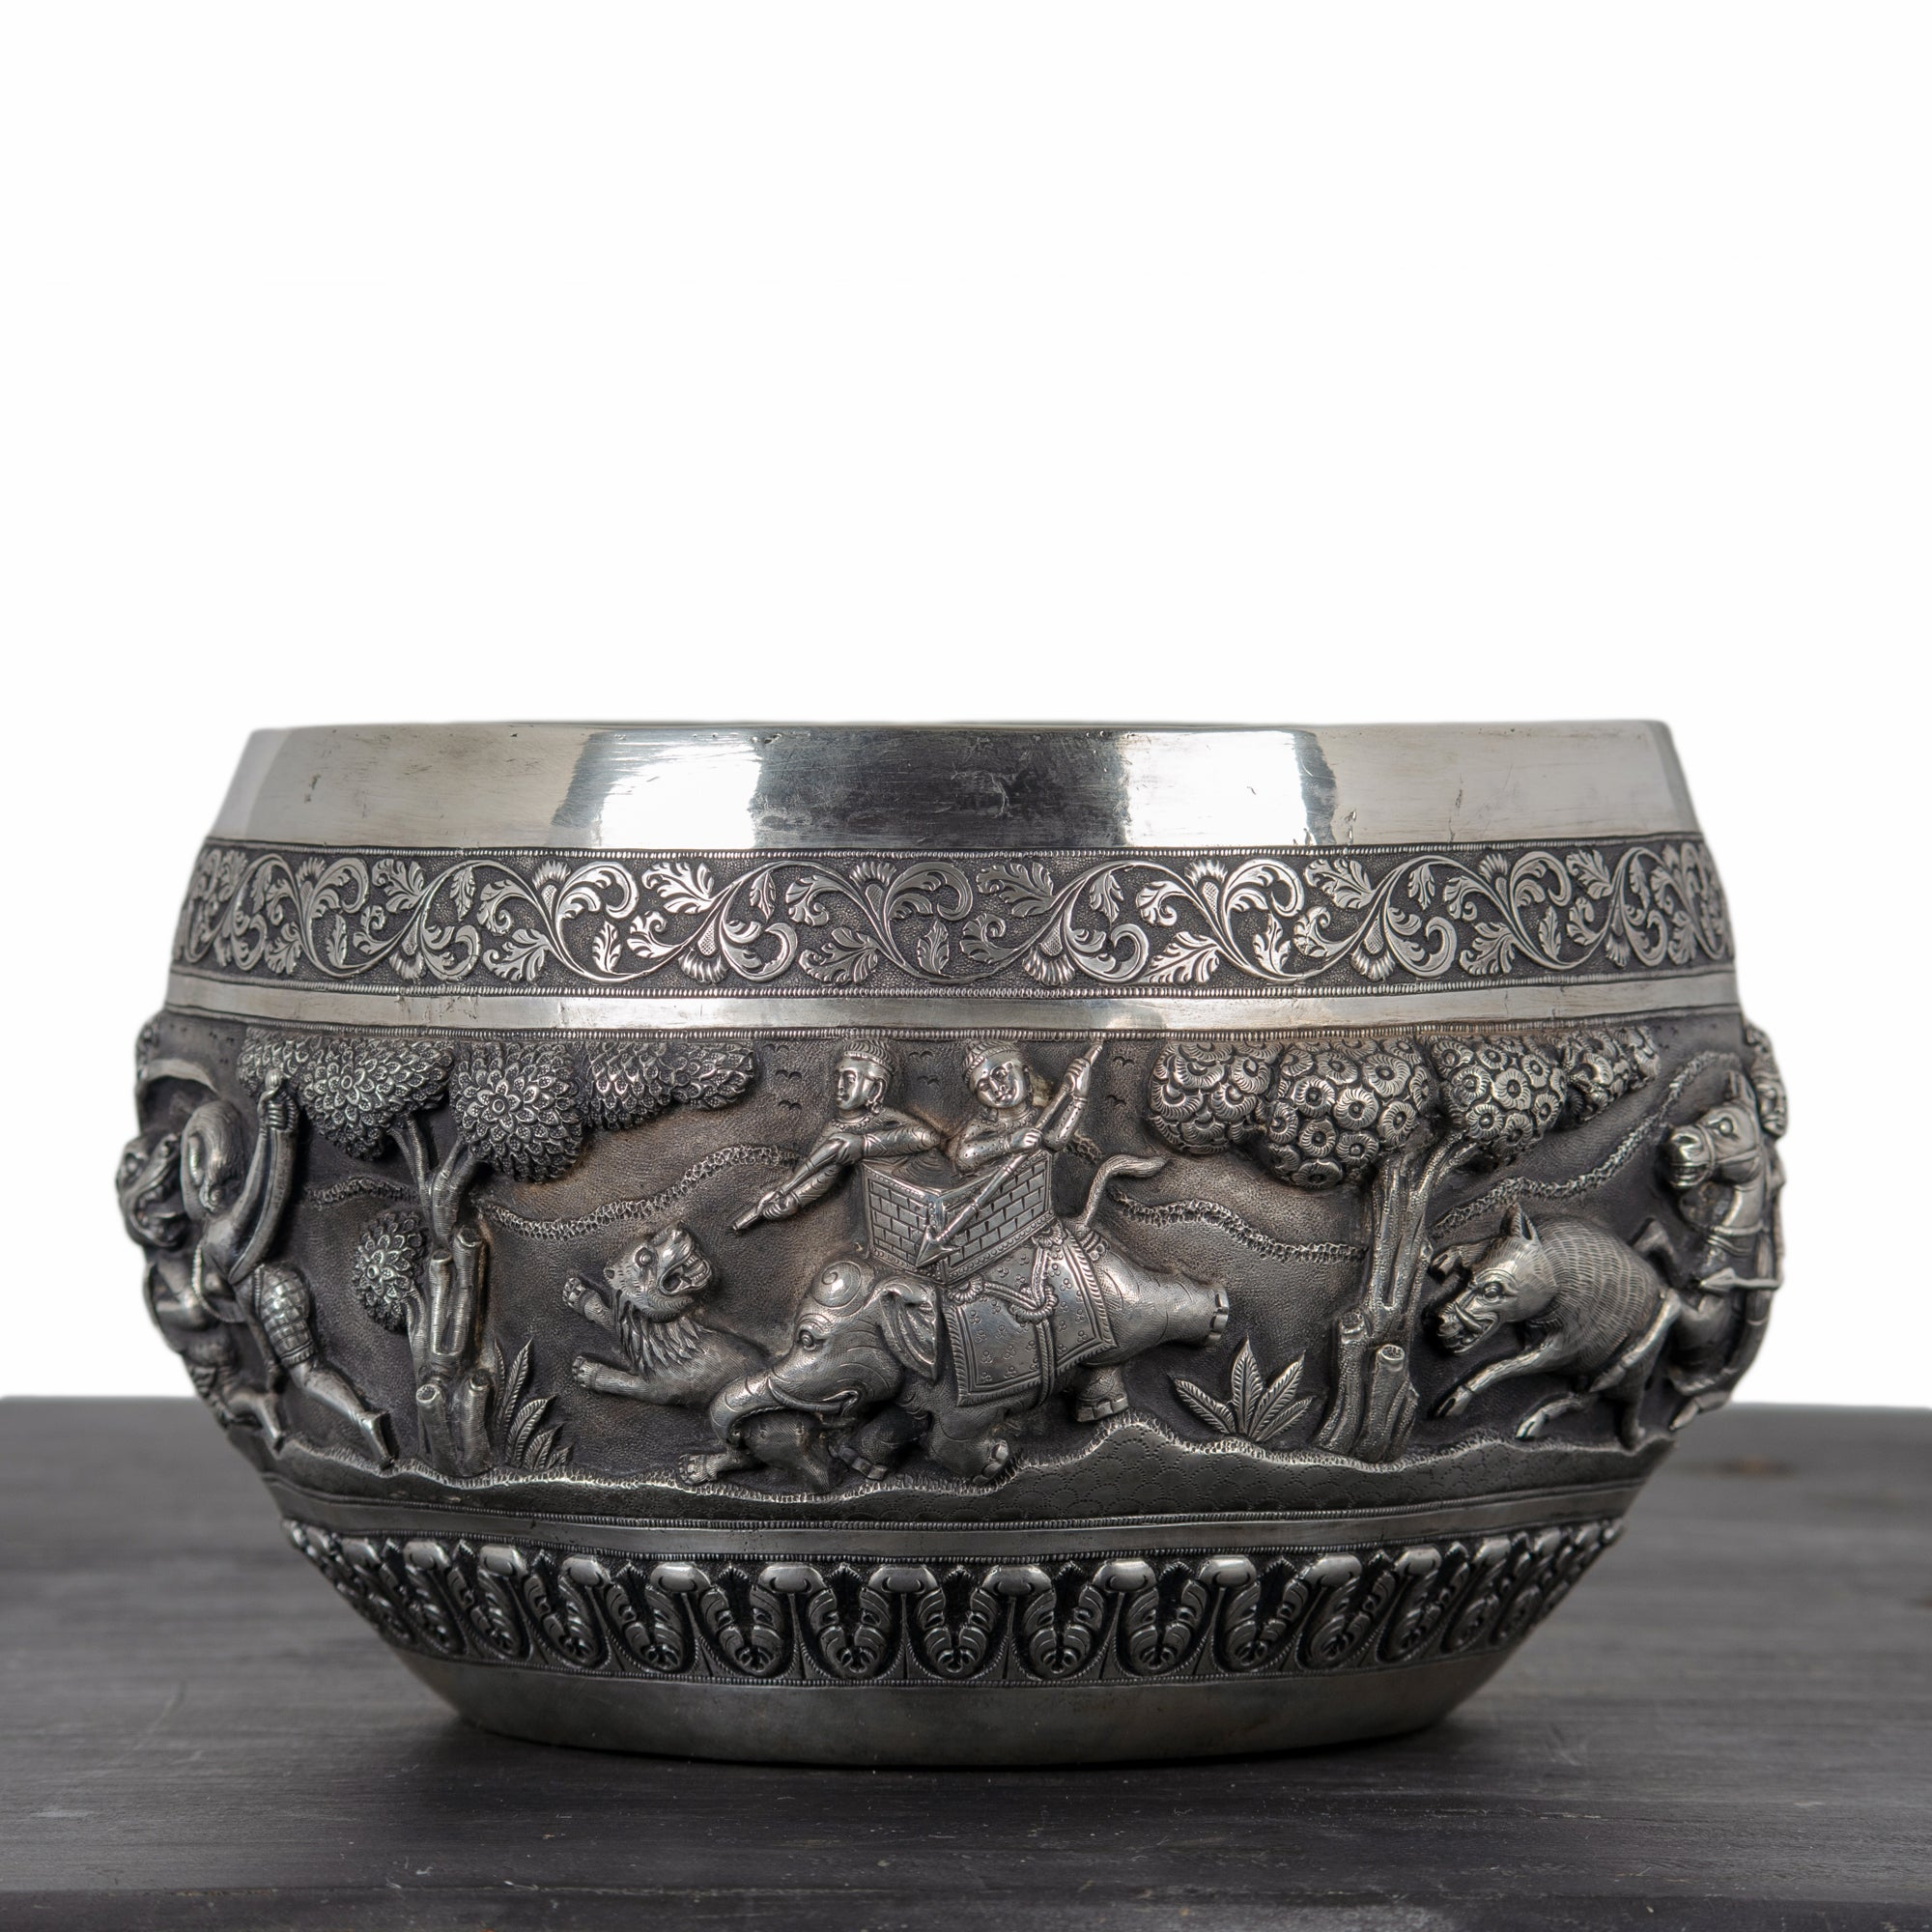 Indian Silver Repoussé Hunting Bowl, Lucknow, 19th Century